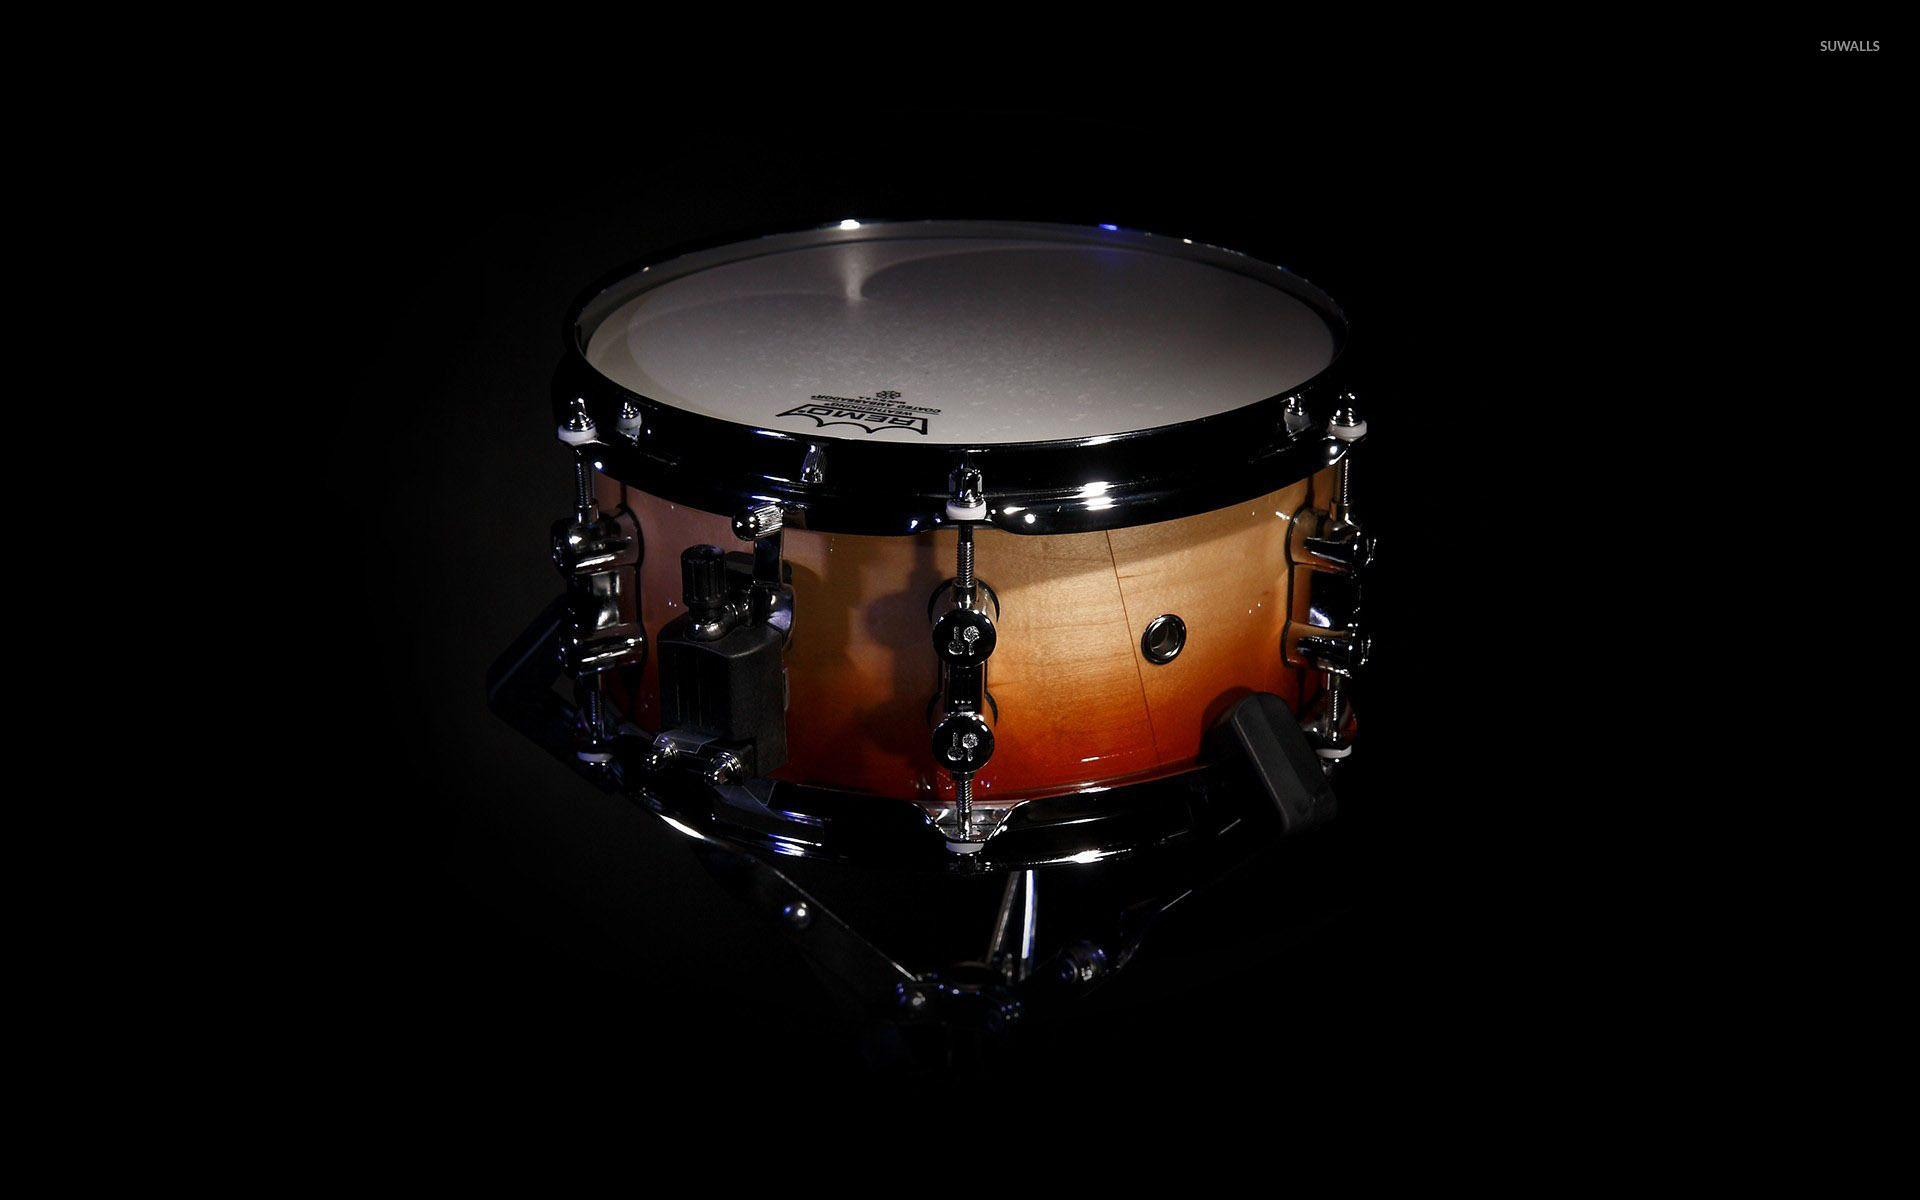 Remo drum kit wallpapers